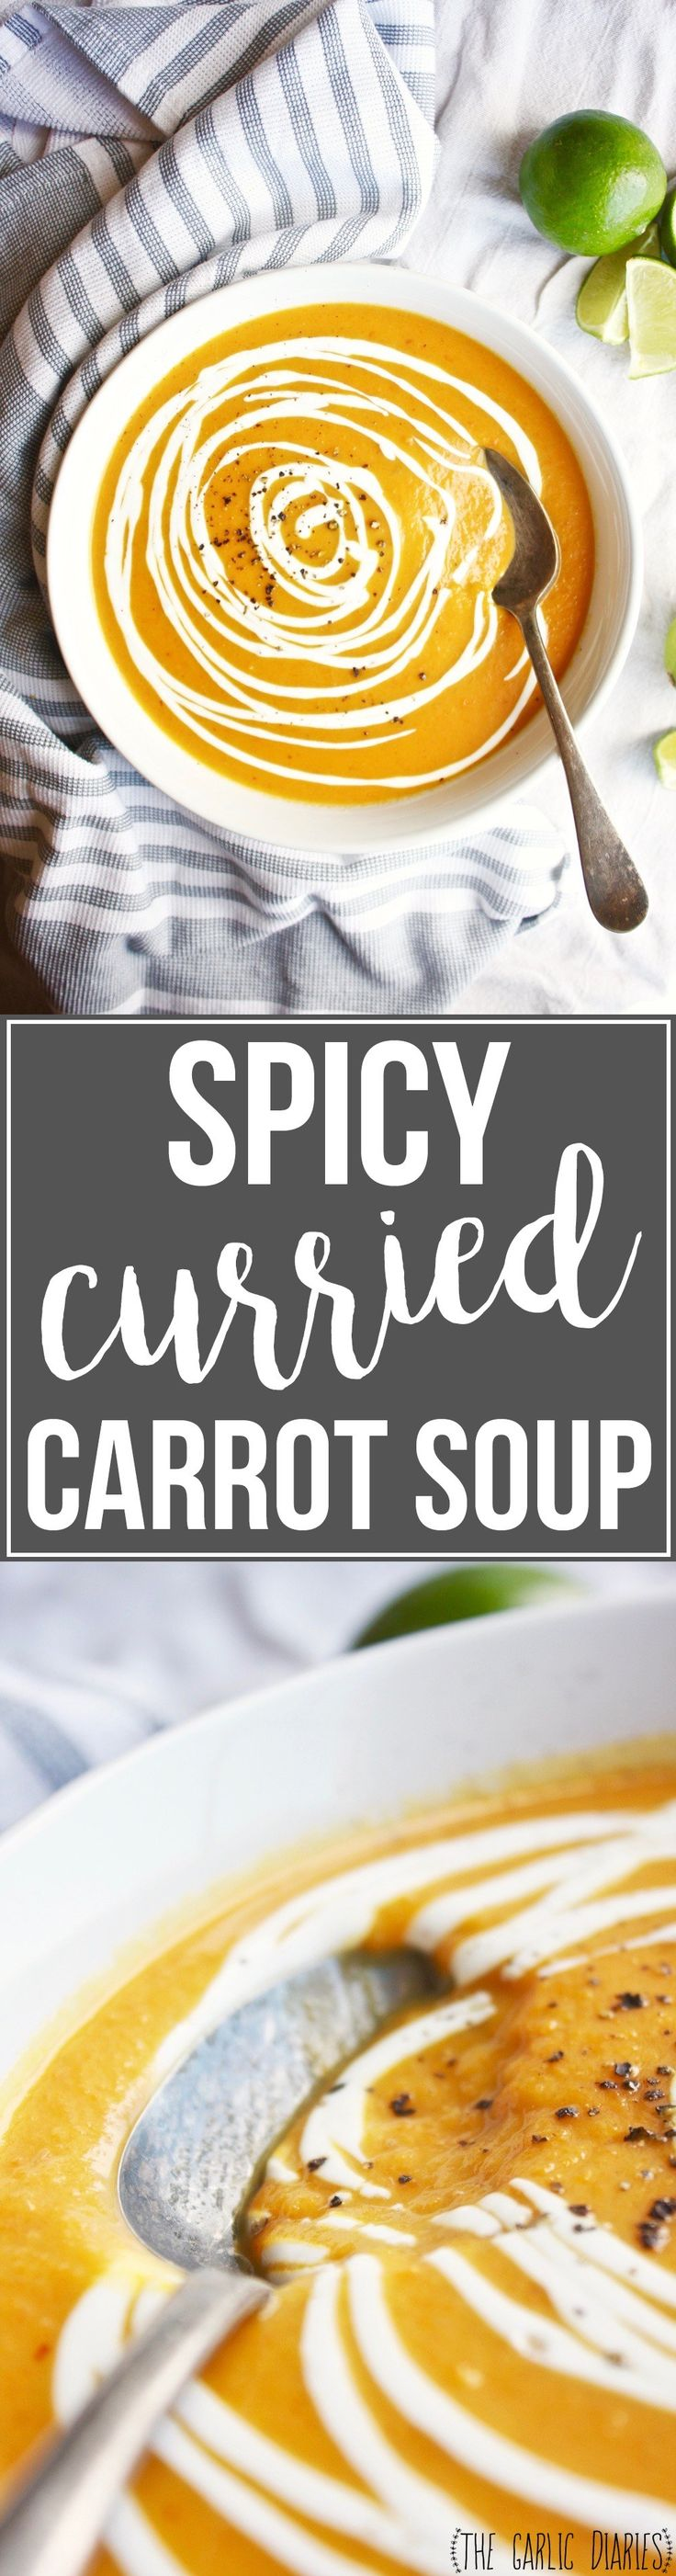 Spicy Curried Carrot Soup - TheGarlicDiaries.com